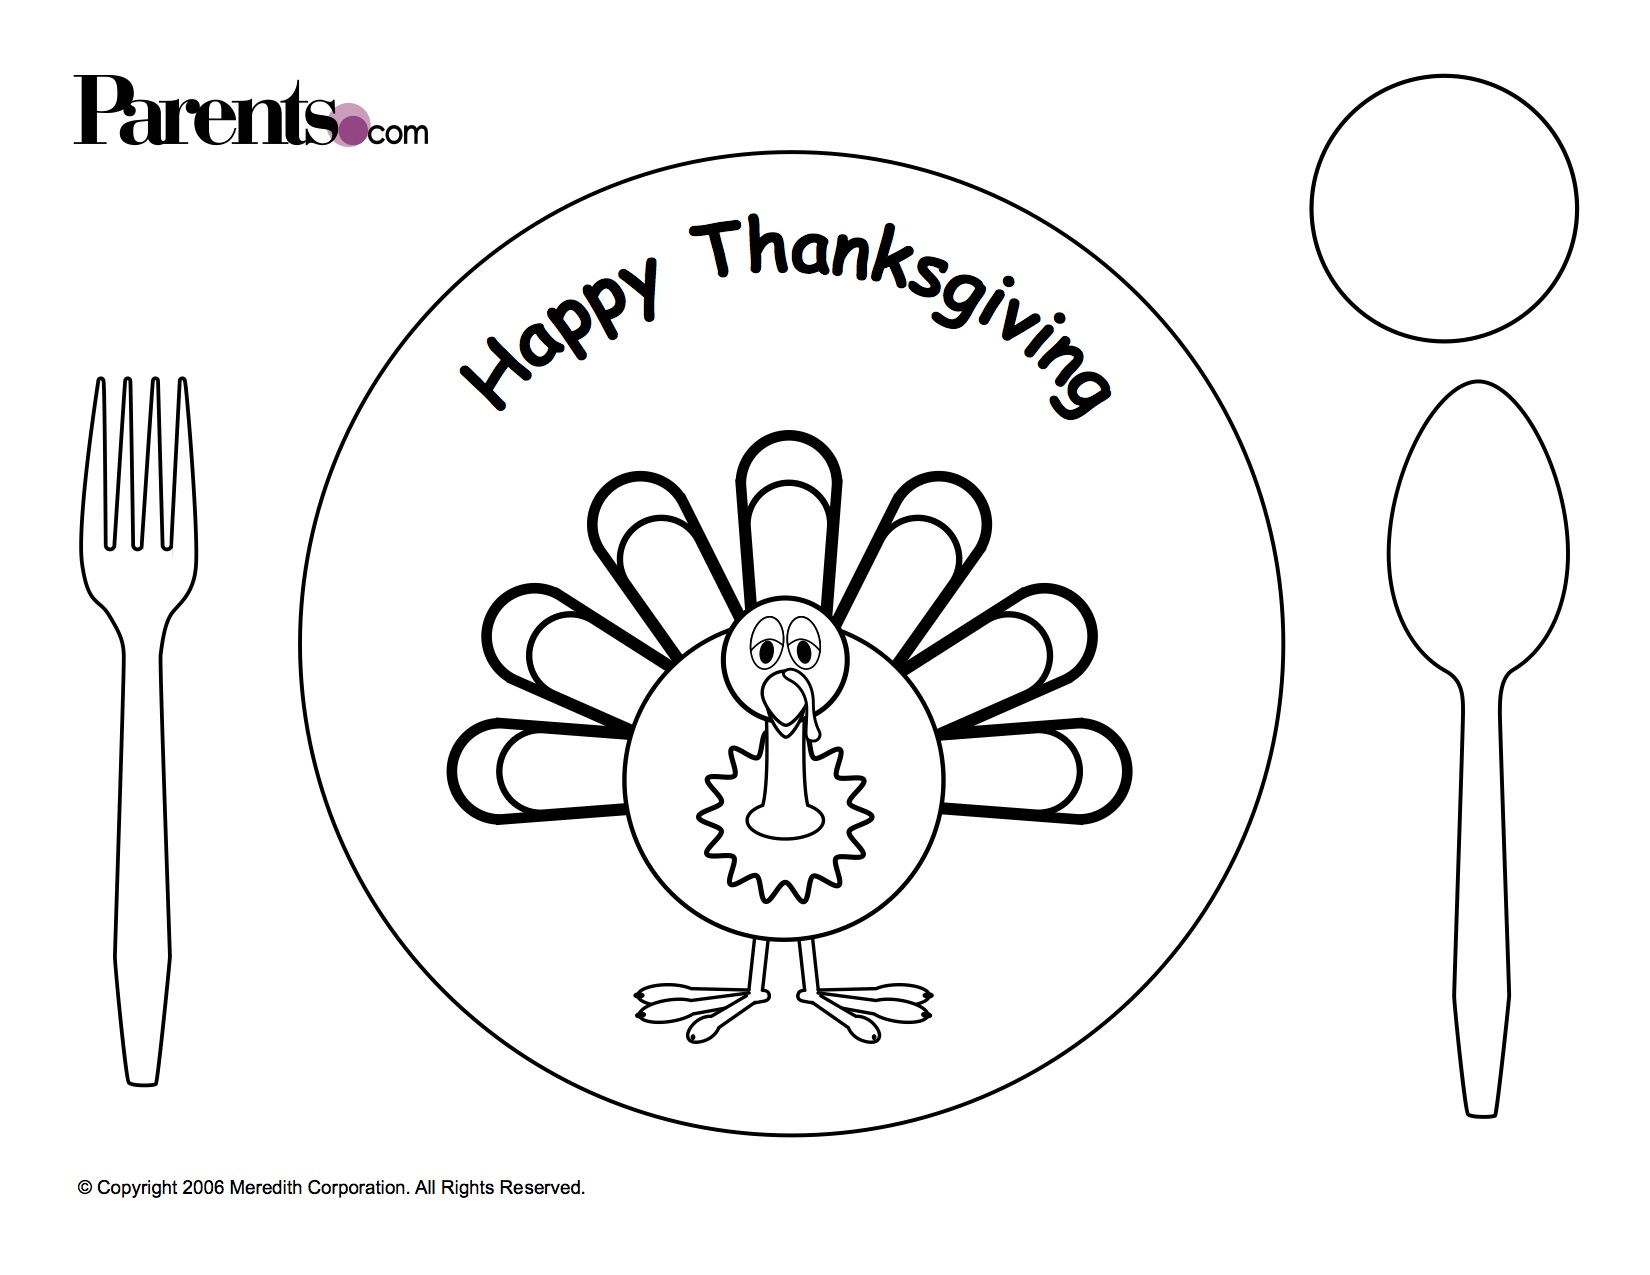 Thanksgiving Printables: Place Cards, Paper Crafts and More